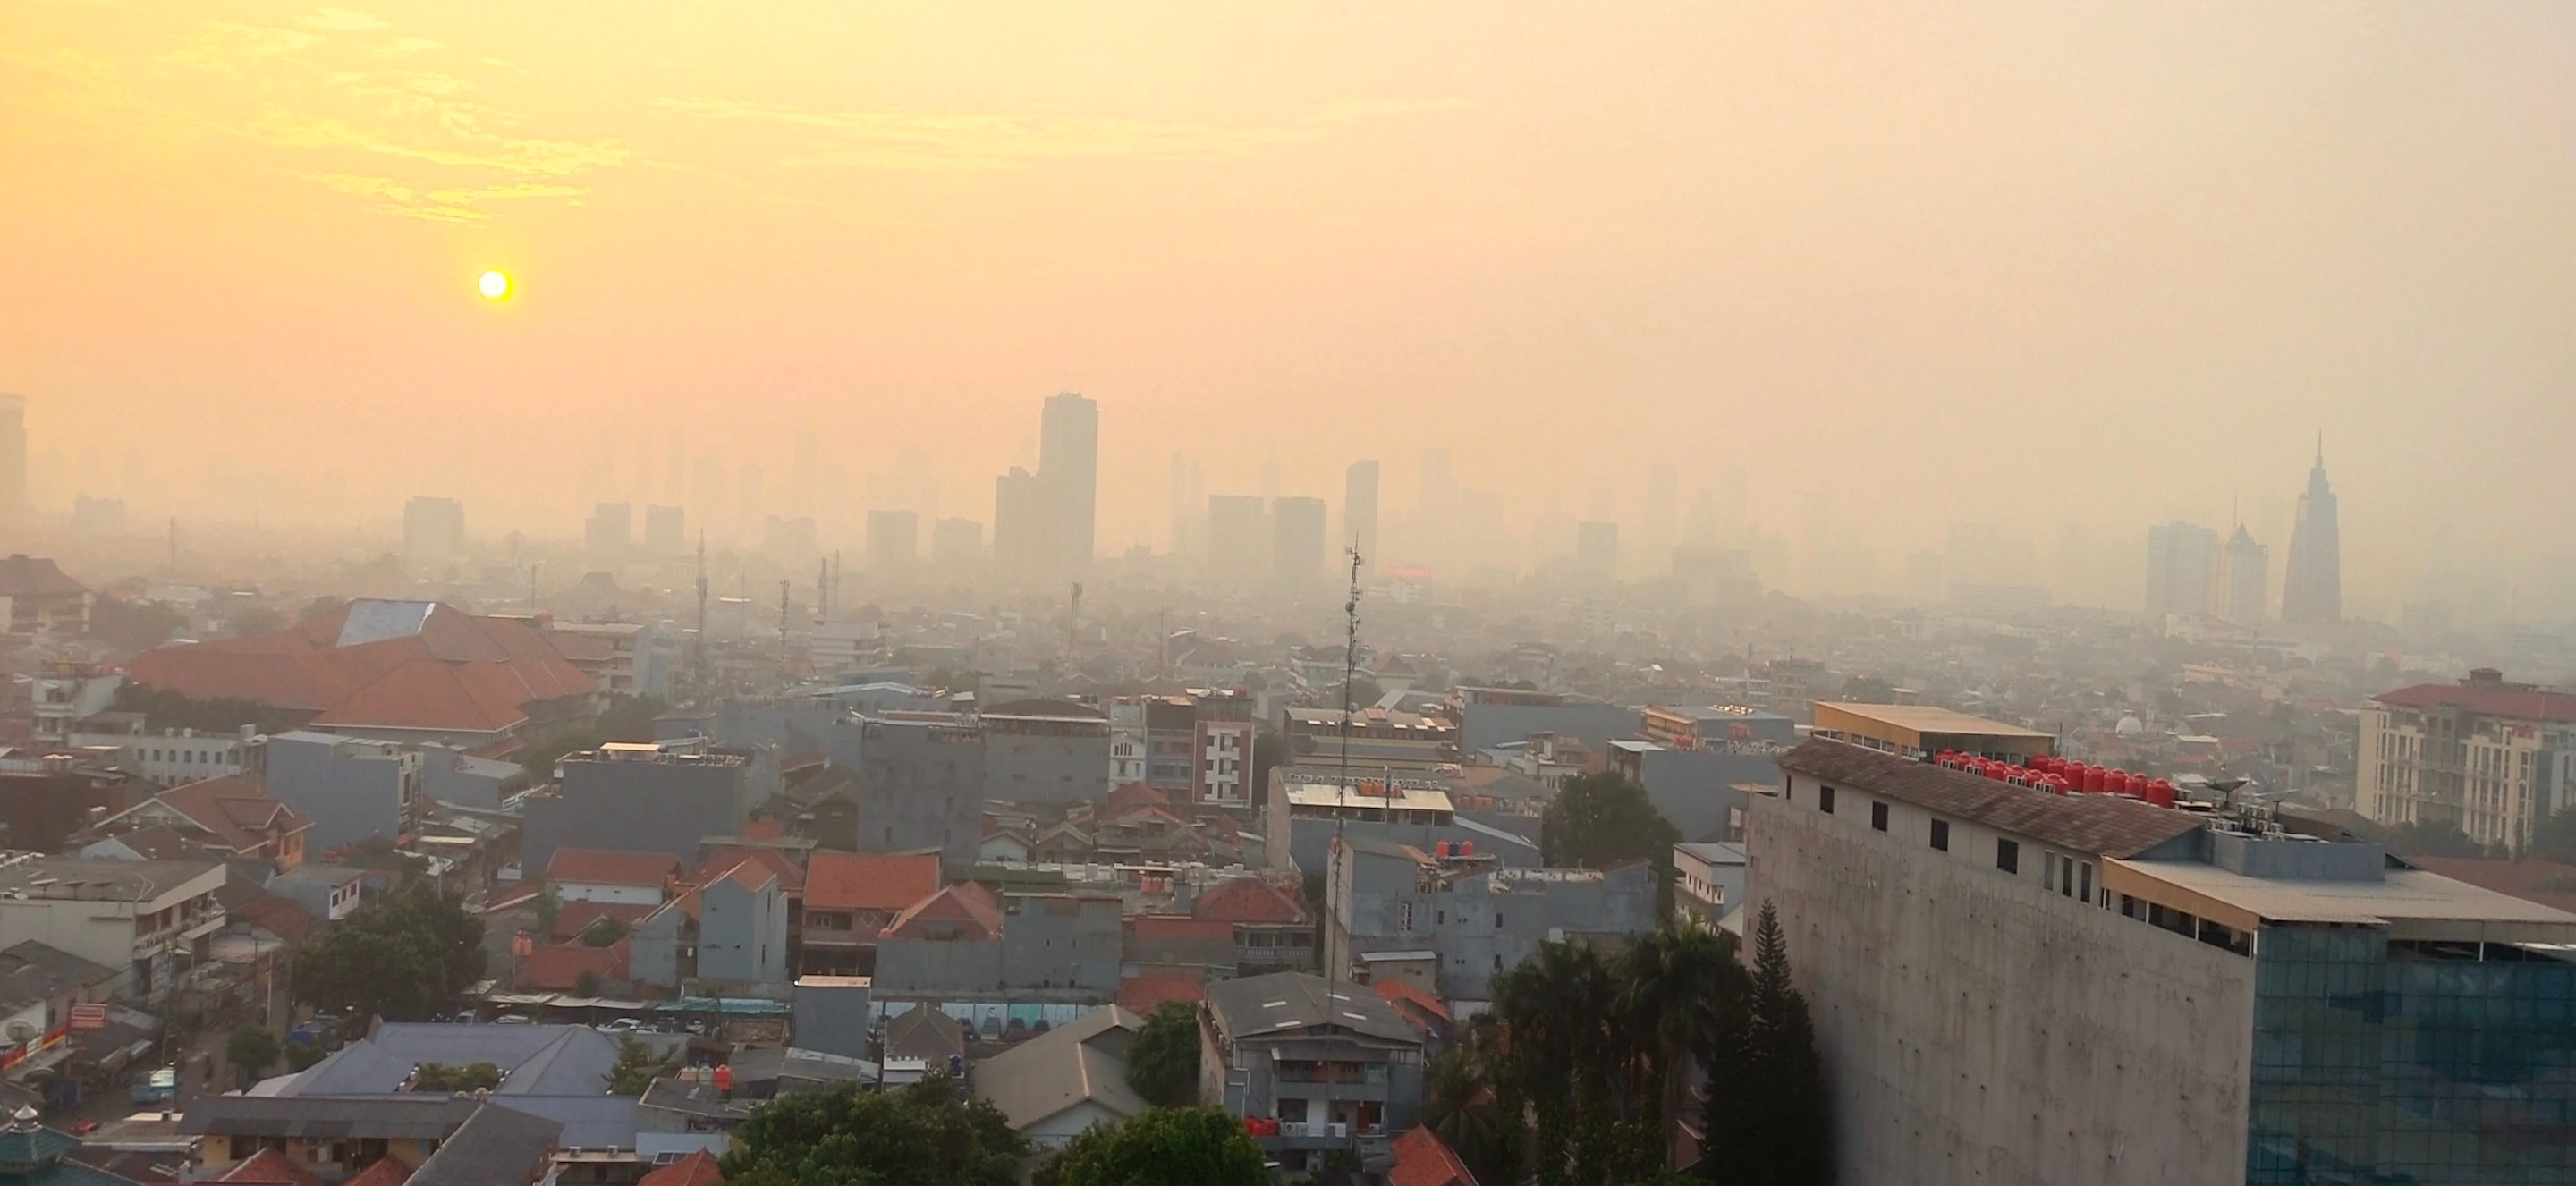 Study Connects Diabetes, Air Pollution to Interstitial Lung Disease